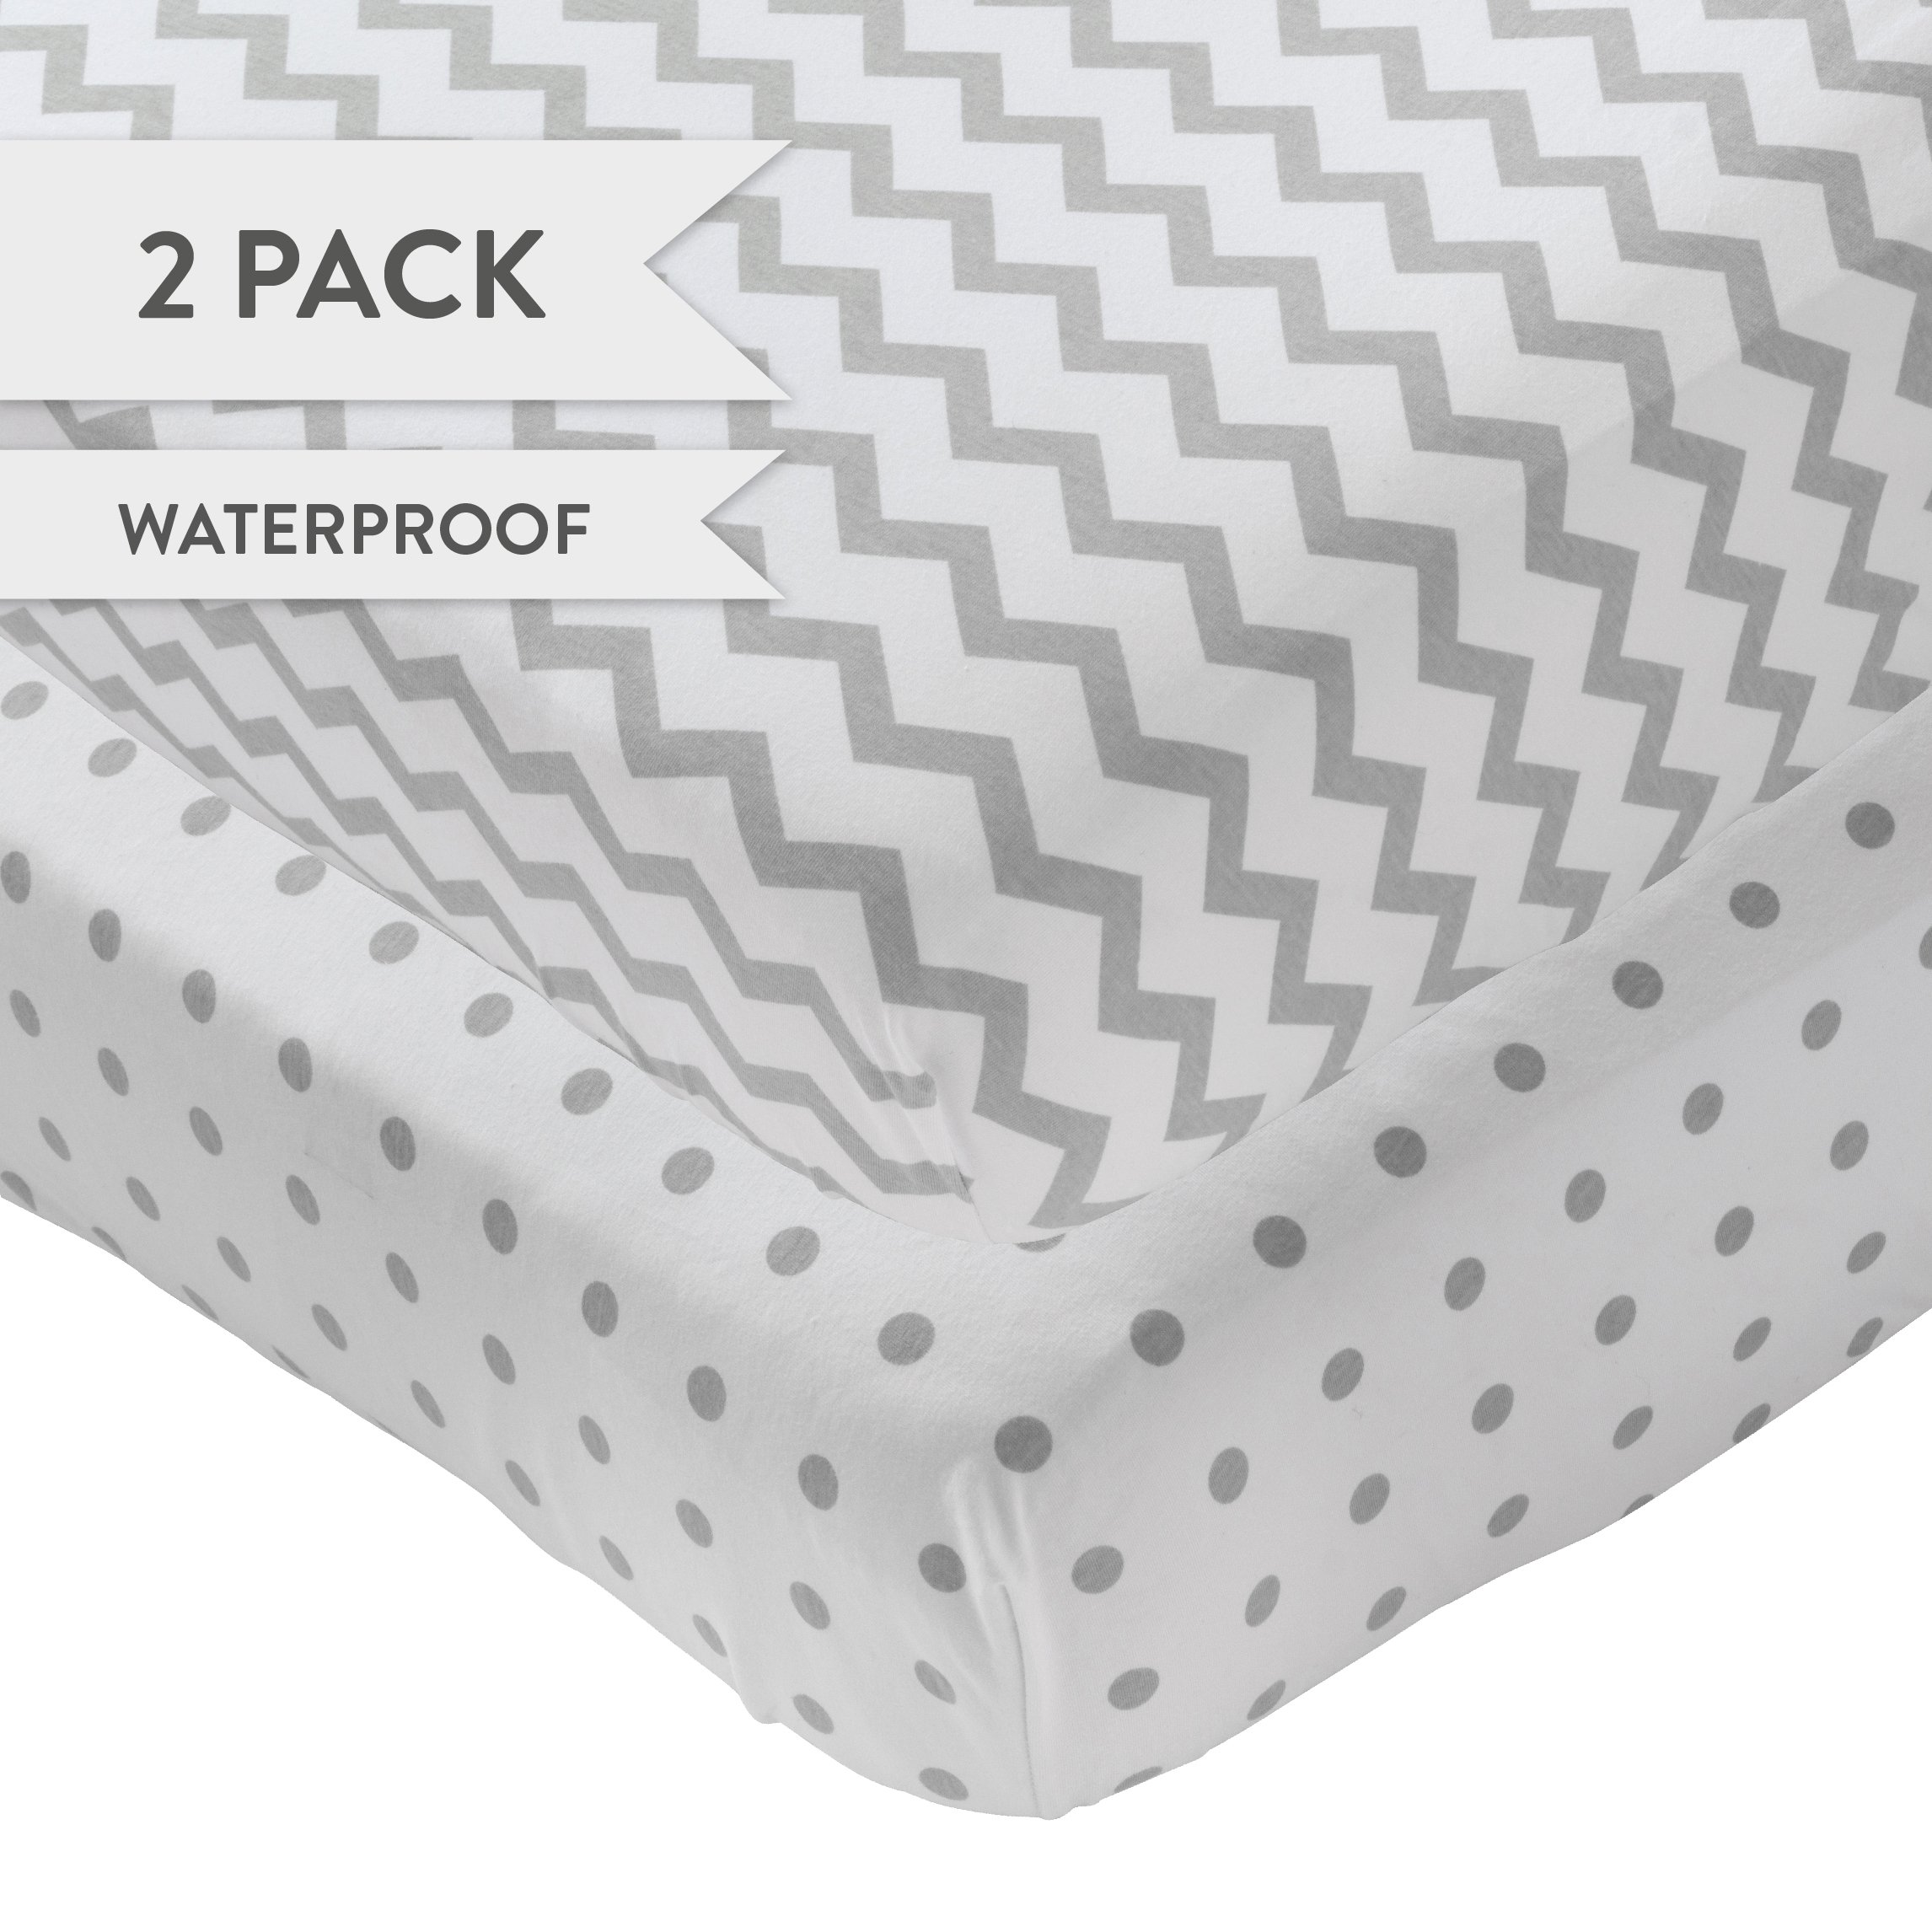 Waterproof Crib Sheet - No need for Mattress Pad Cover -2 Pack Grey Chevron and Polka Dot